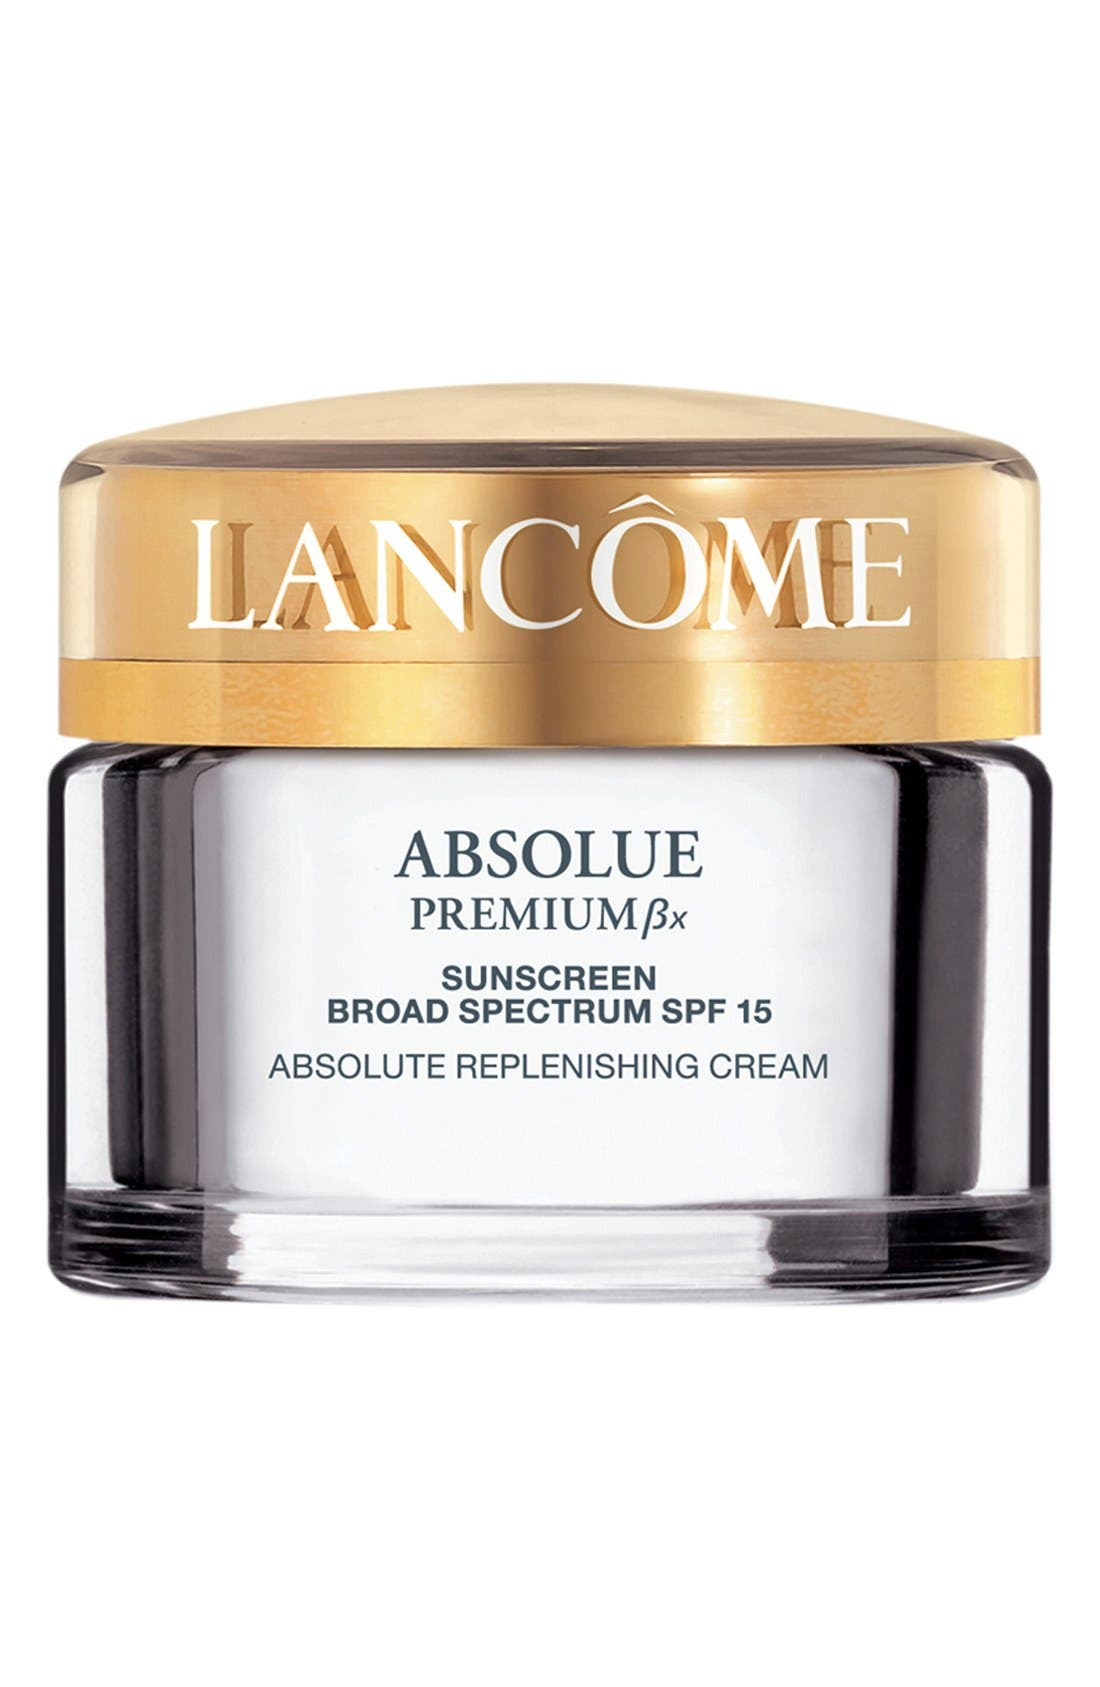 Absolue Premium ßx Absolute Replenishing Cream SPF 15,                             Main thumbnail 1, color,                             000